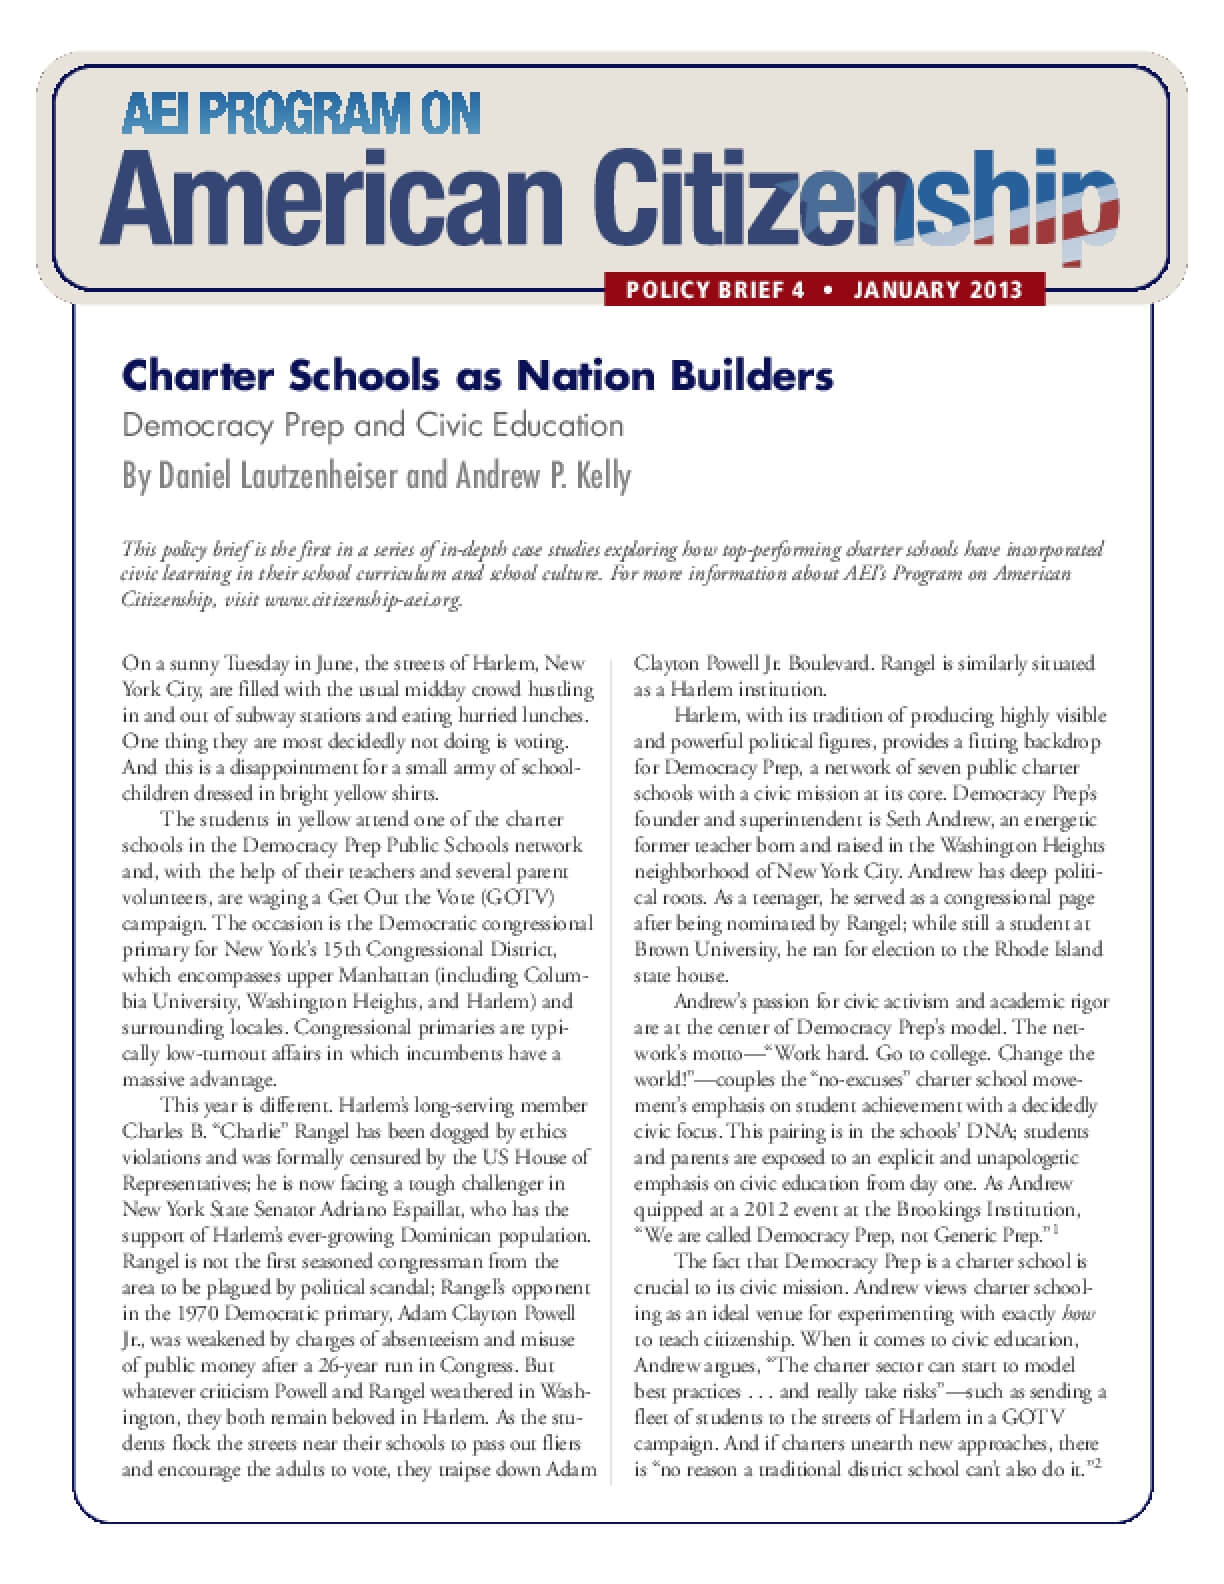 Charter Schools as Nation Builders: Democracy Prep and Civic Education